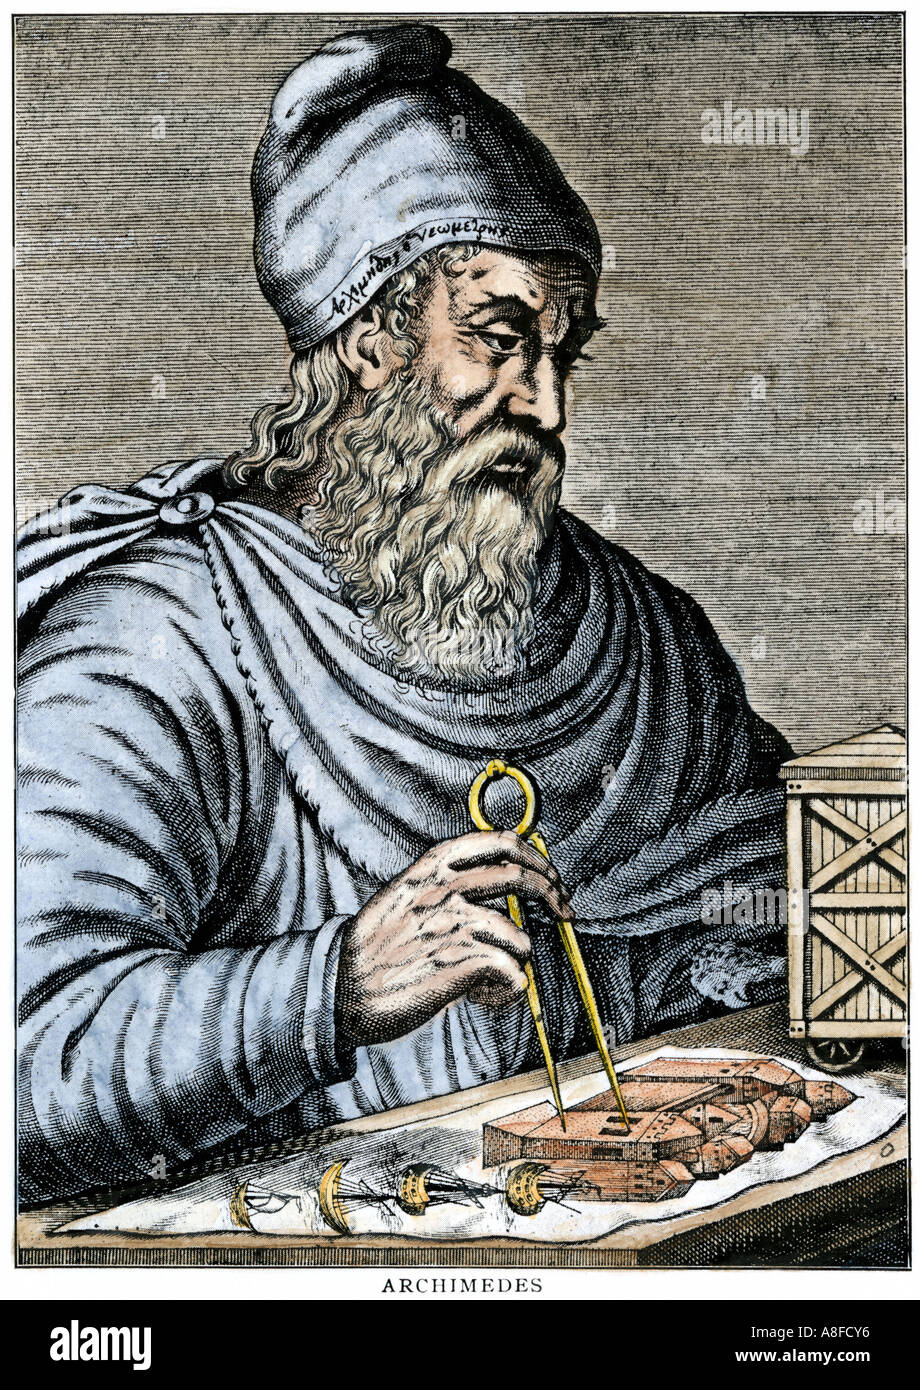 Archimedes using calipers in ancient greece stock photo for A archimede